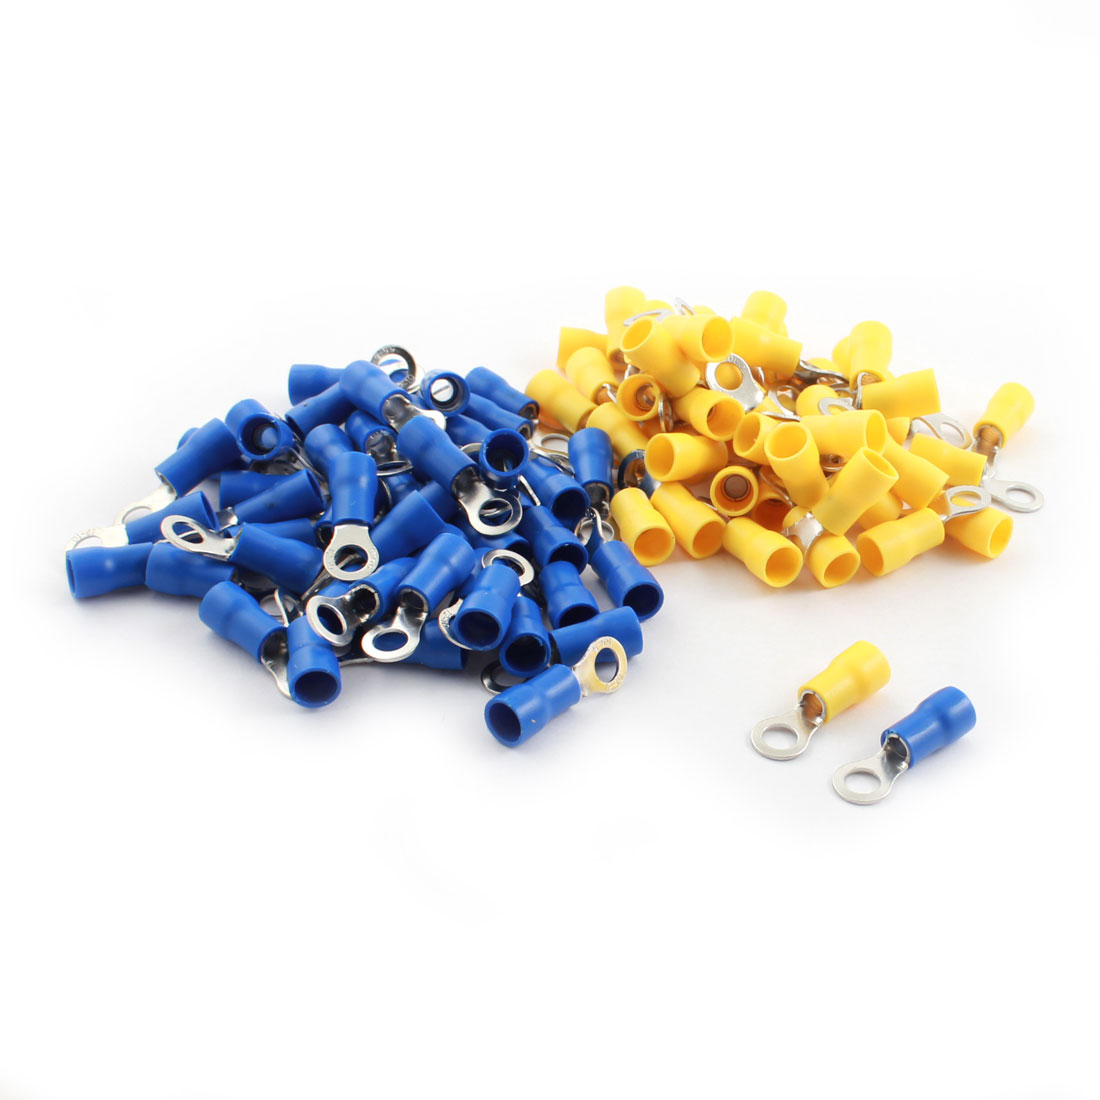 100Pcs RV5.5-5 48A 12-10AWG Blue Yellow Pre Insulated Ring Crimp Terminal Cable Connector 6.4mm